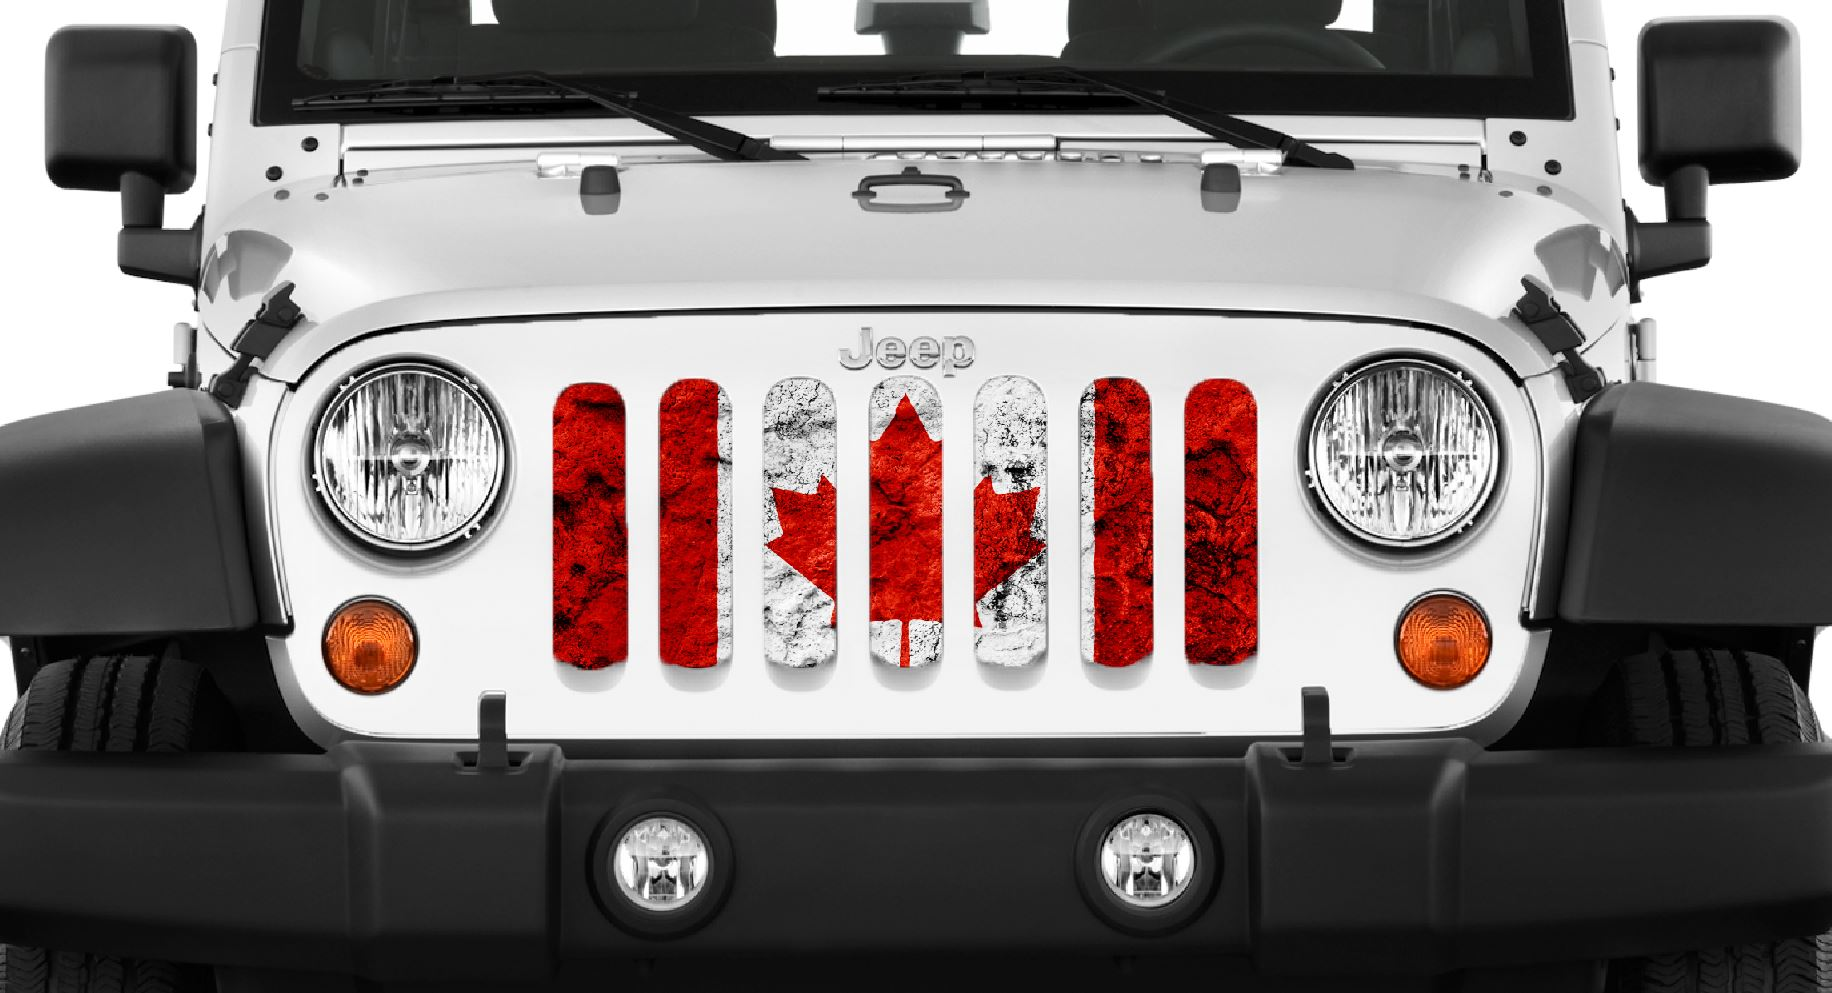 Jeep Wrangler Grunge Canada Flag Grille Insert Dirty Acres